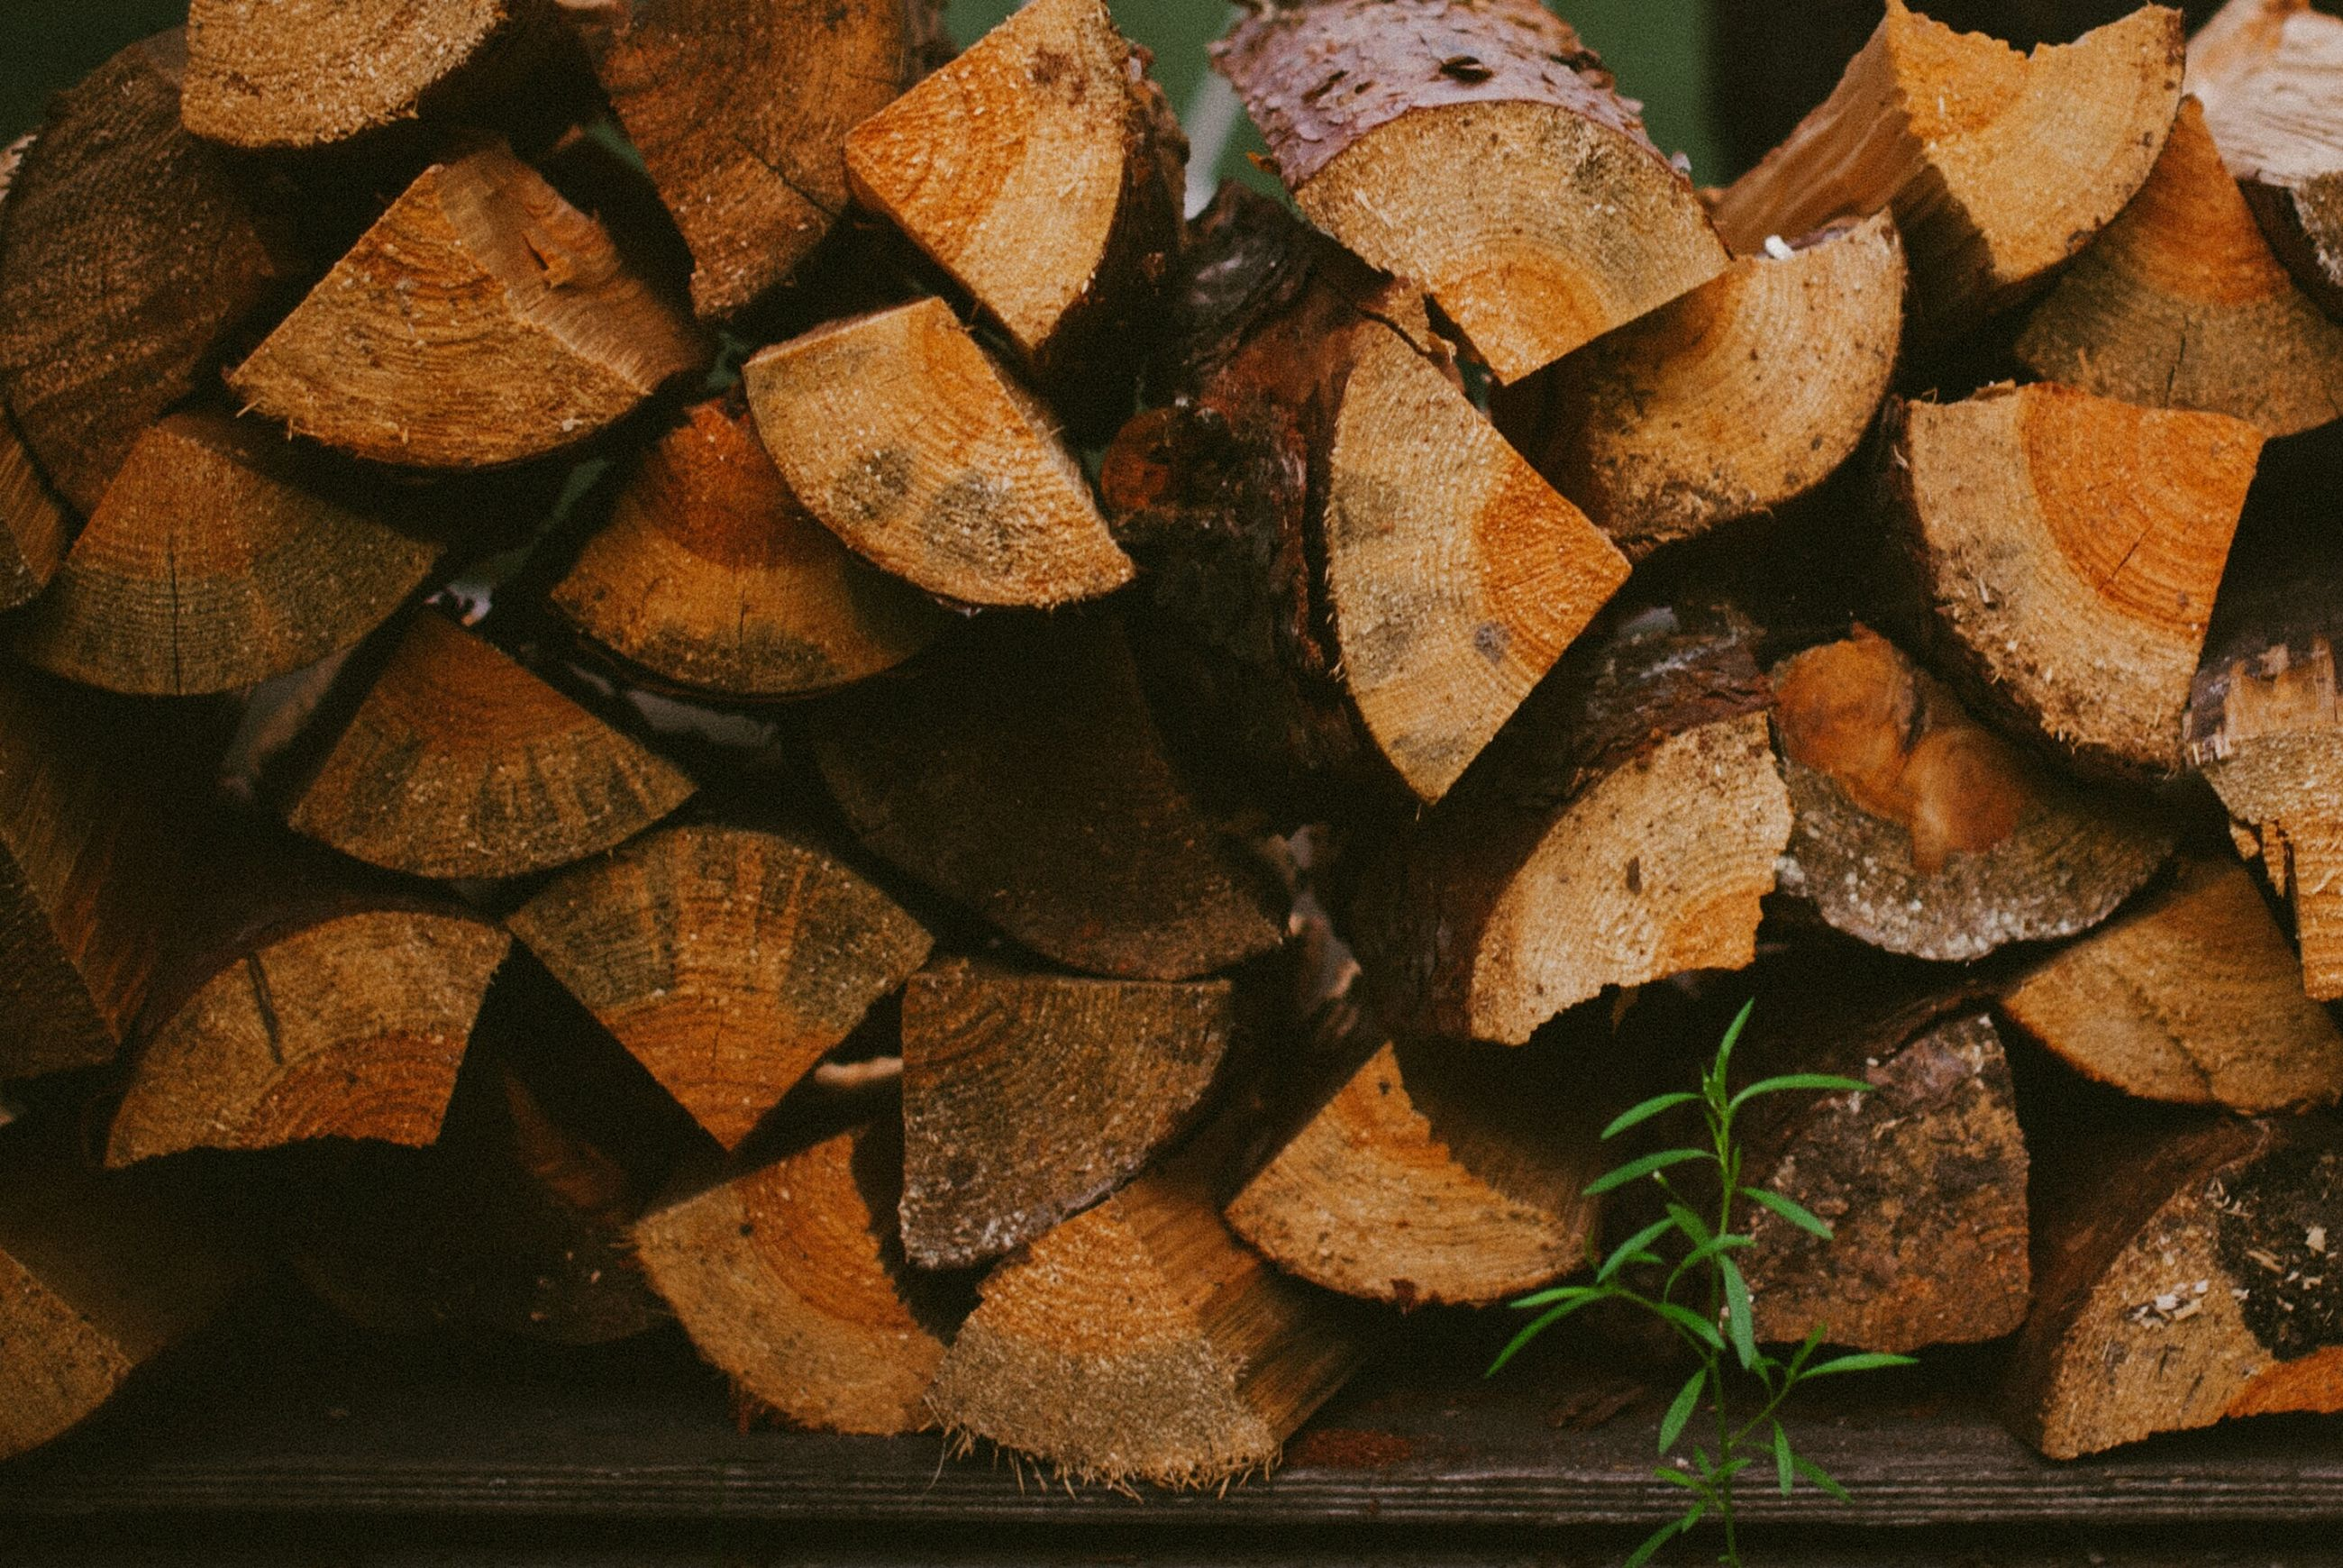 large group of objects, abundance, full frame, firewood, deforestation, close-up, brown, lumber industry, backgrounds, log, dry, high angle view, stack, freshness, wood - material, still life, leaf, food and drink, no people, food